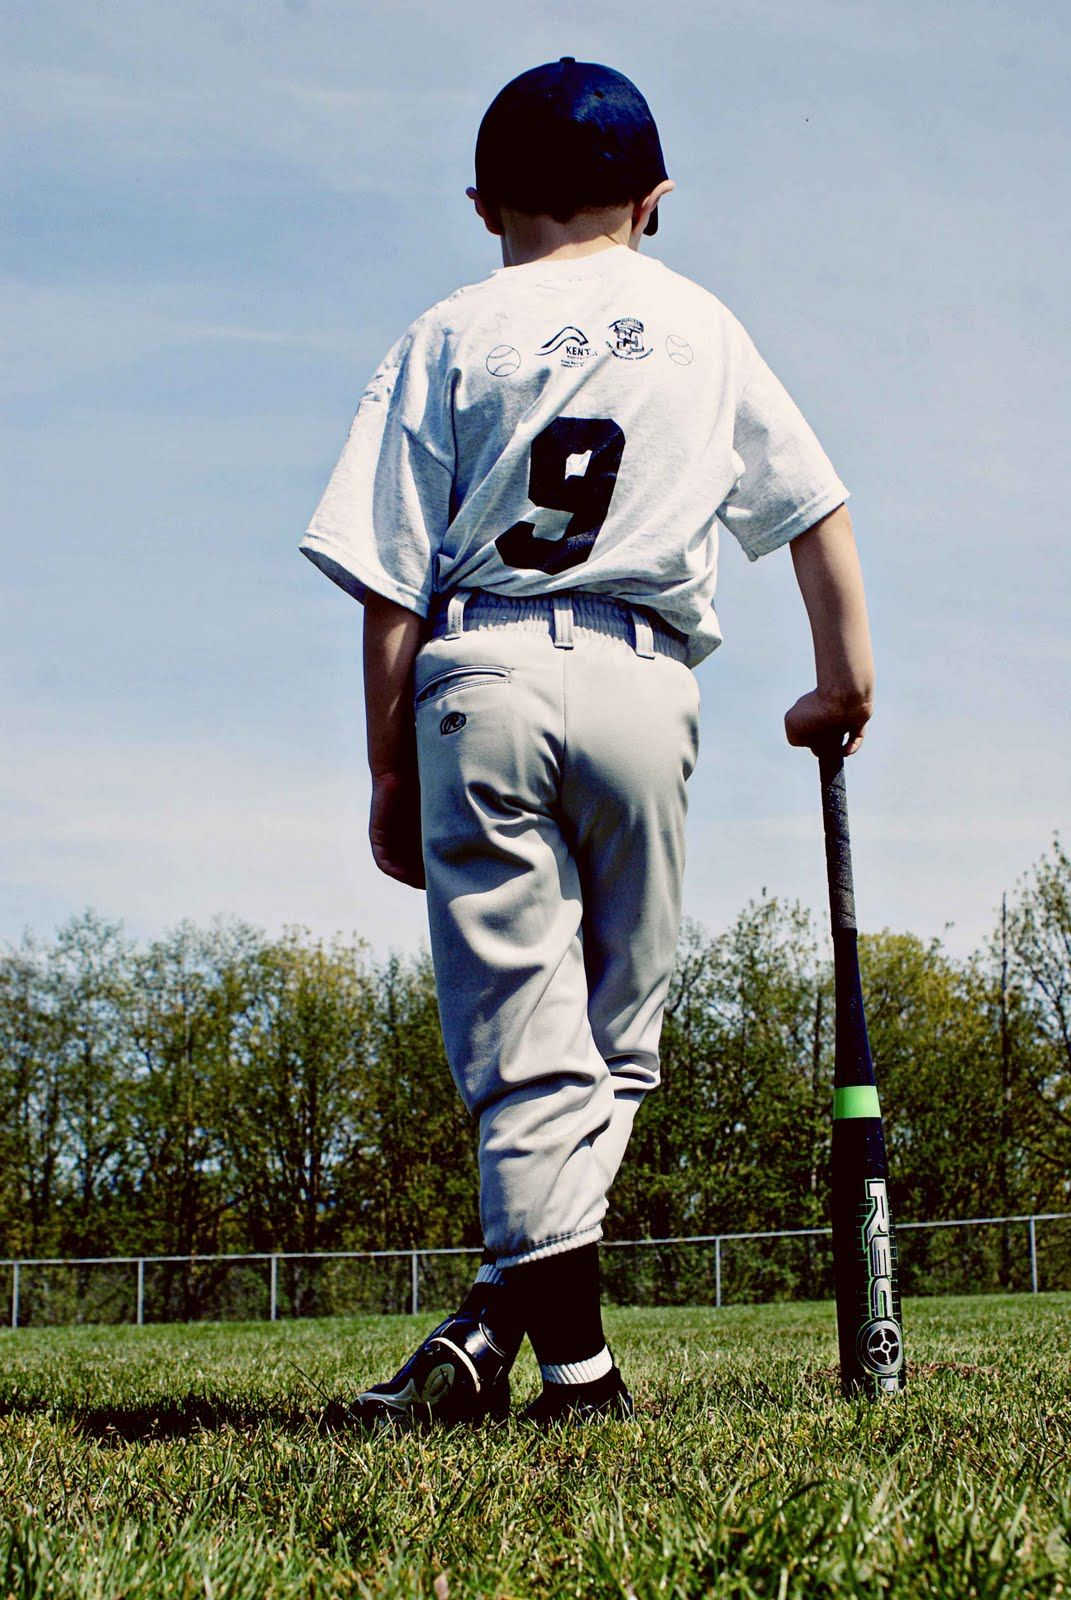 June 10 They May Never Be Baseball Stars But Hopefullly W M Will Always Have A Love Of The Game Yeste Baseball Photography Sports Pictures Baseball Boys